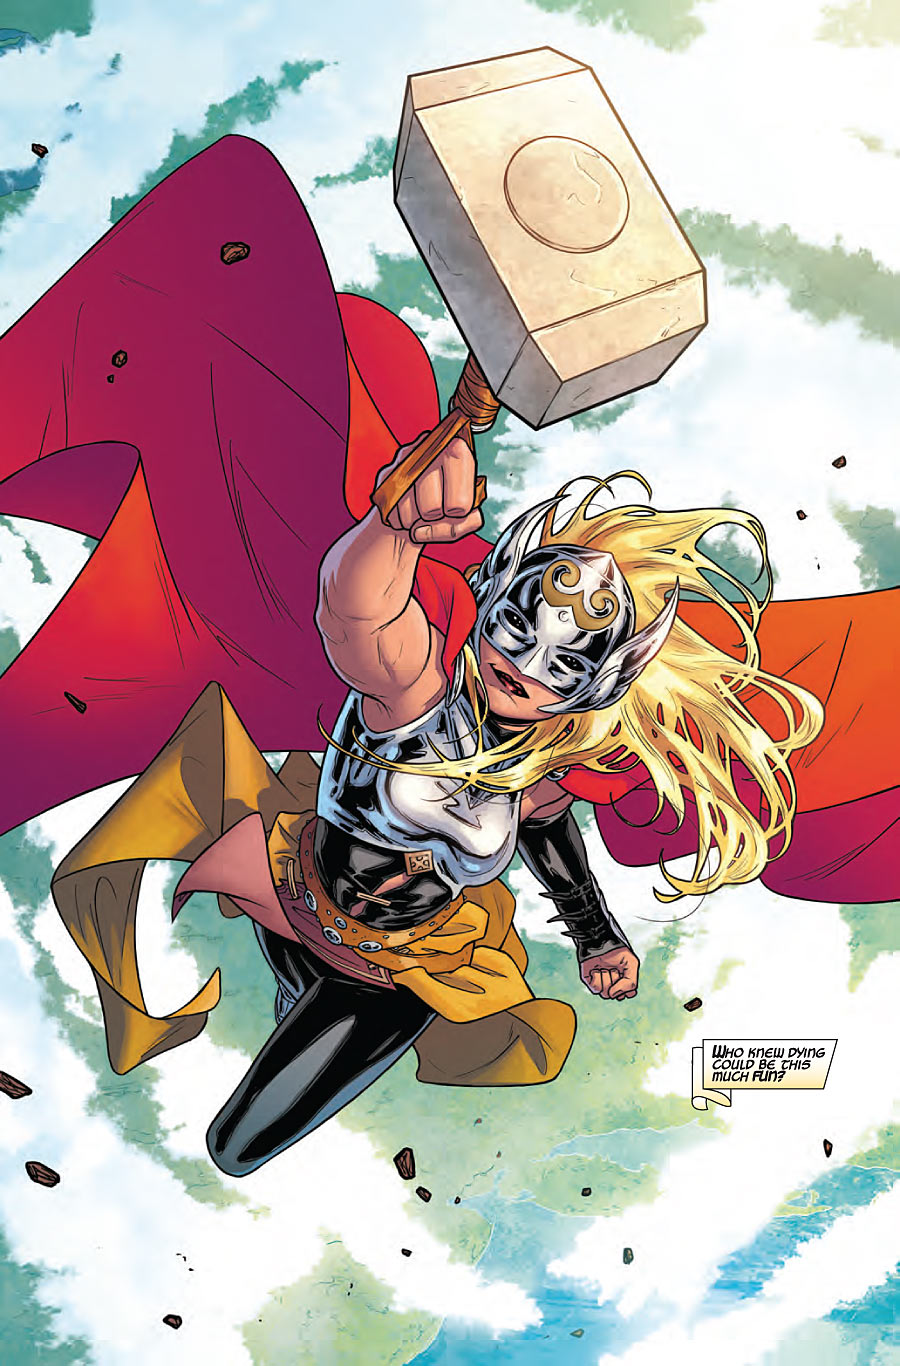 Dr. Jane Foster once again wields the mighty Mjolnir to become the Goddess of Thunder in The Mighty Thor #1.